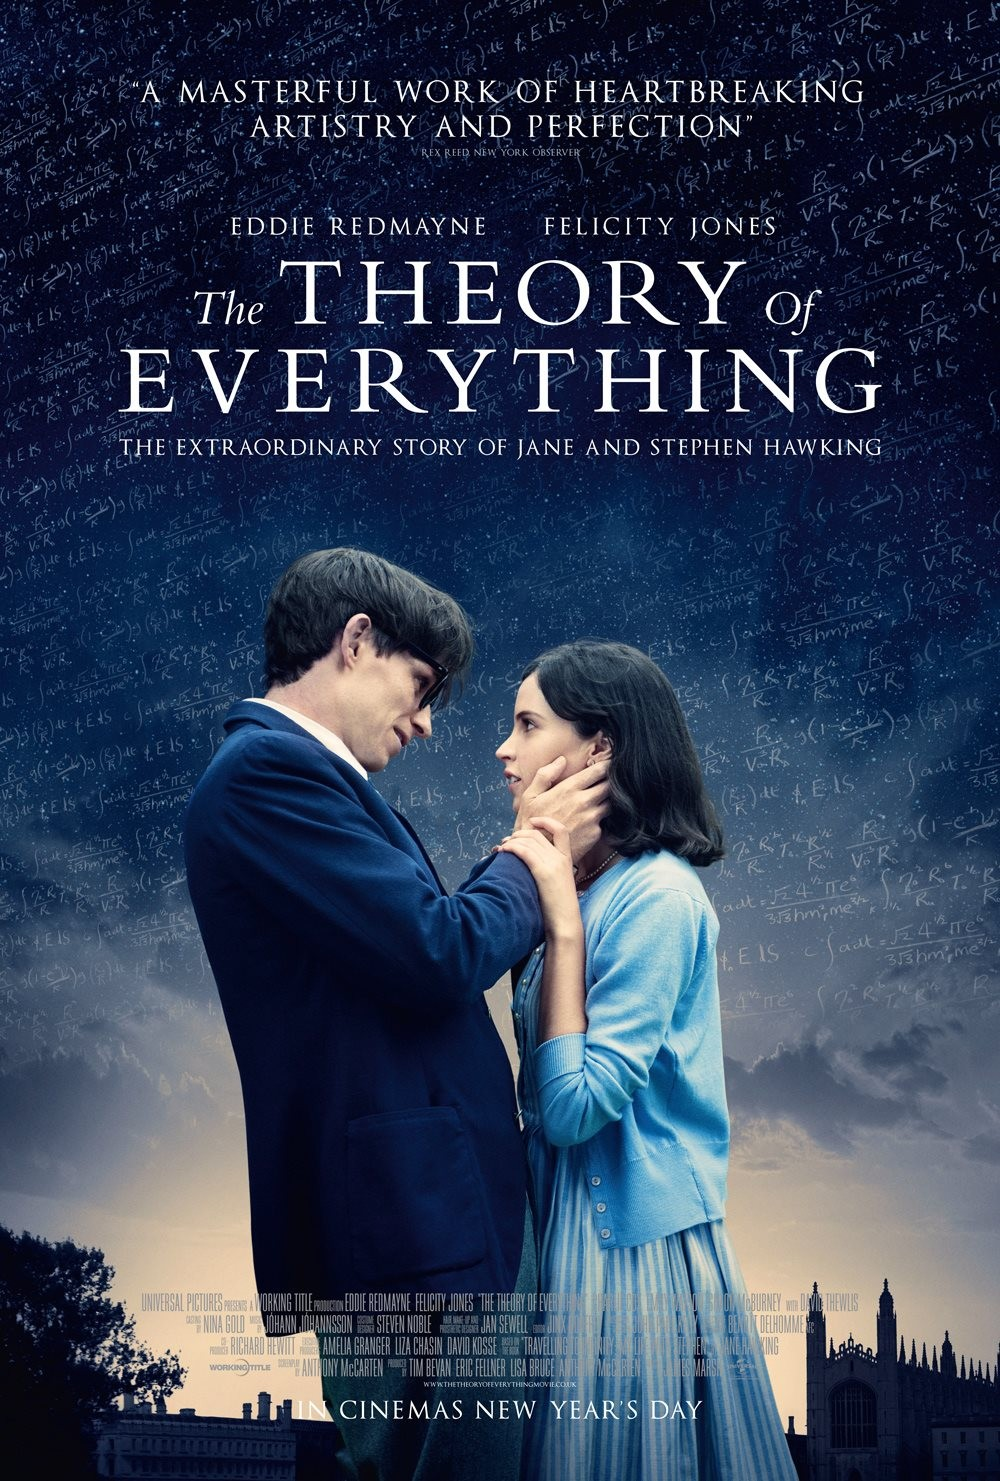 The Theory of Everything-Official Poster Banner PROMO-02OUTUBRO2014-00